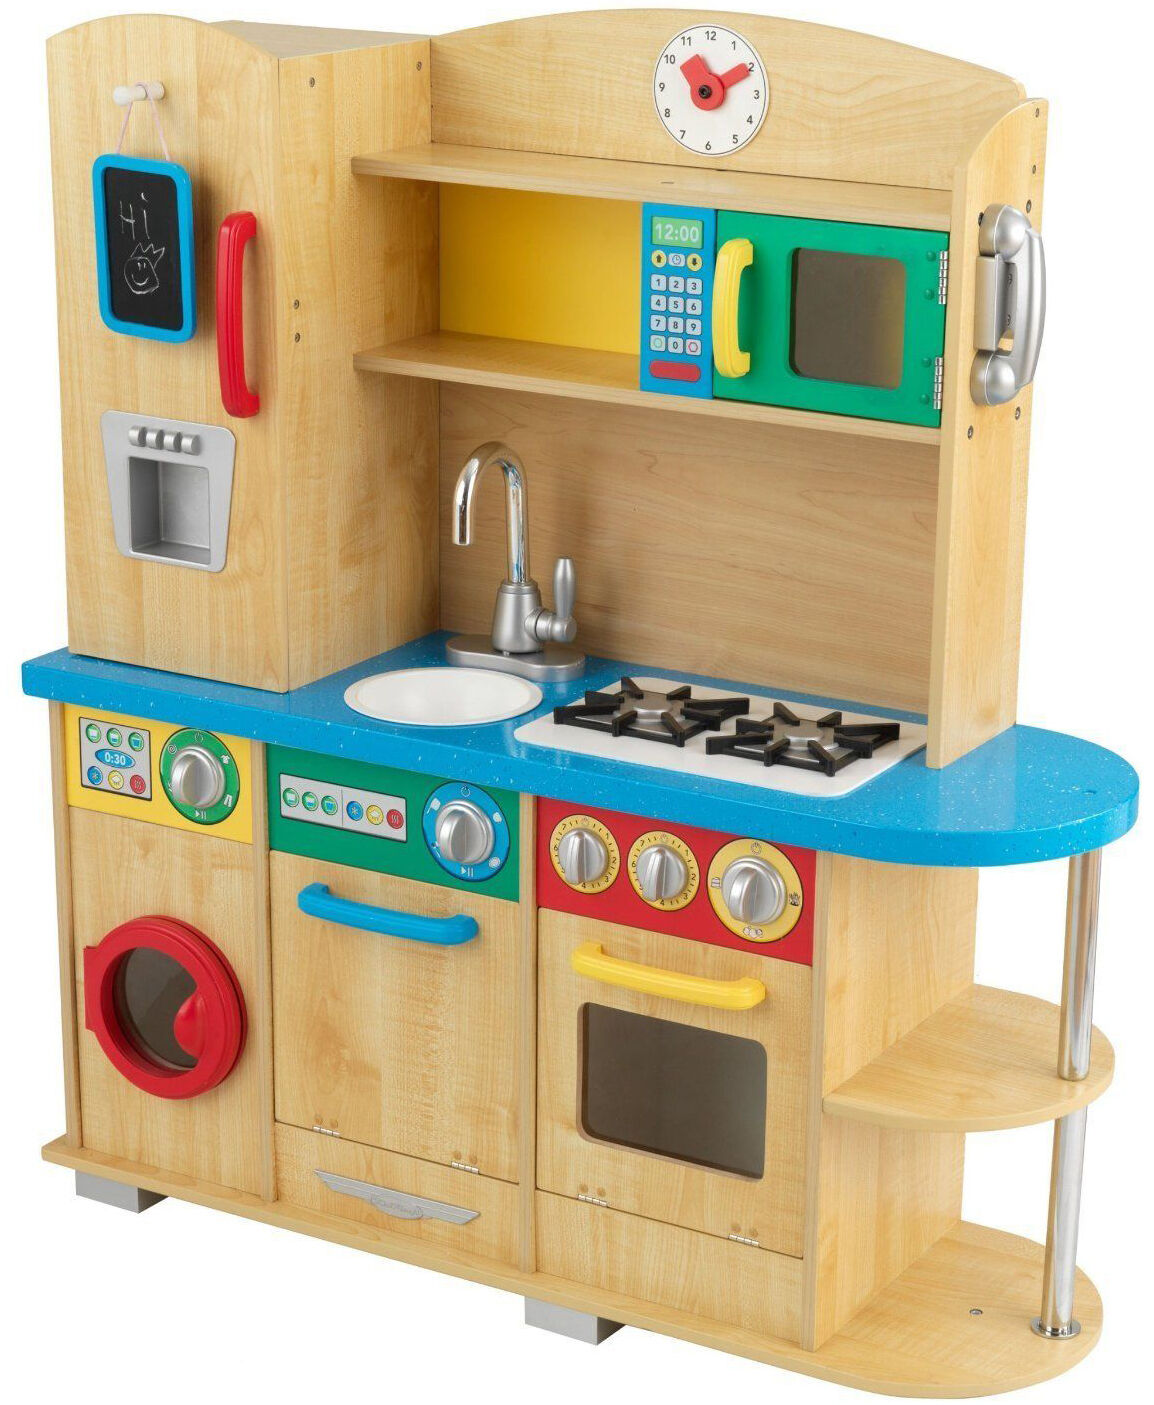 Top 10 wooden kitchens for kids ebay for Play kitchen designs